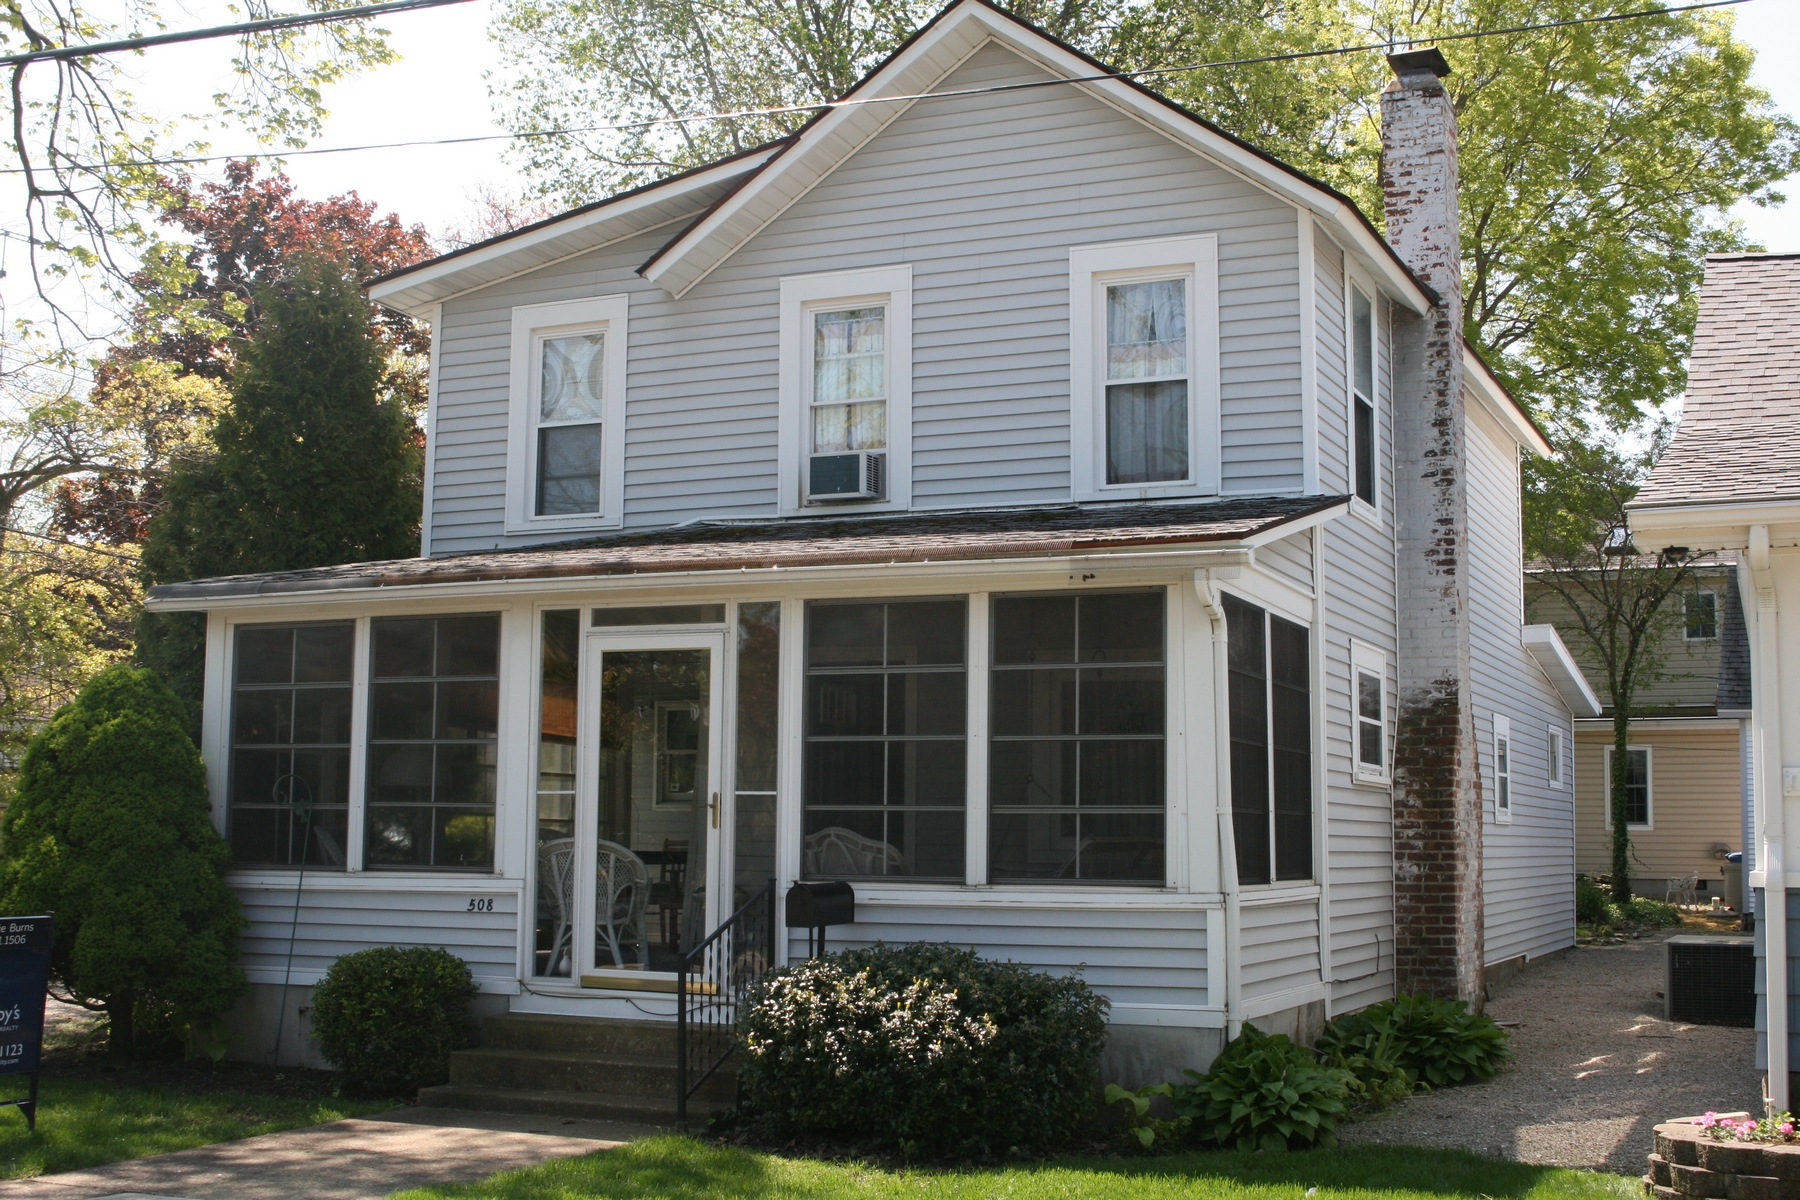 Single Family Home for Sale at 508 East Second Street Lakeside, Ohio 43440 United States